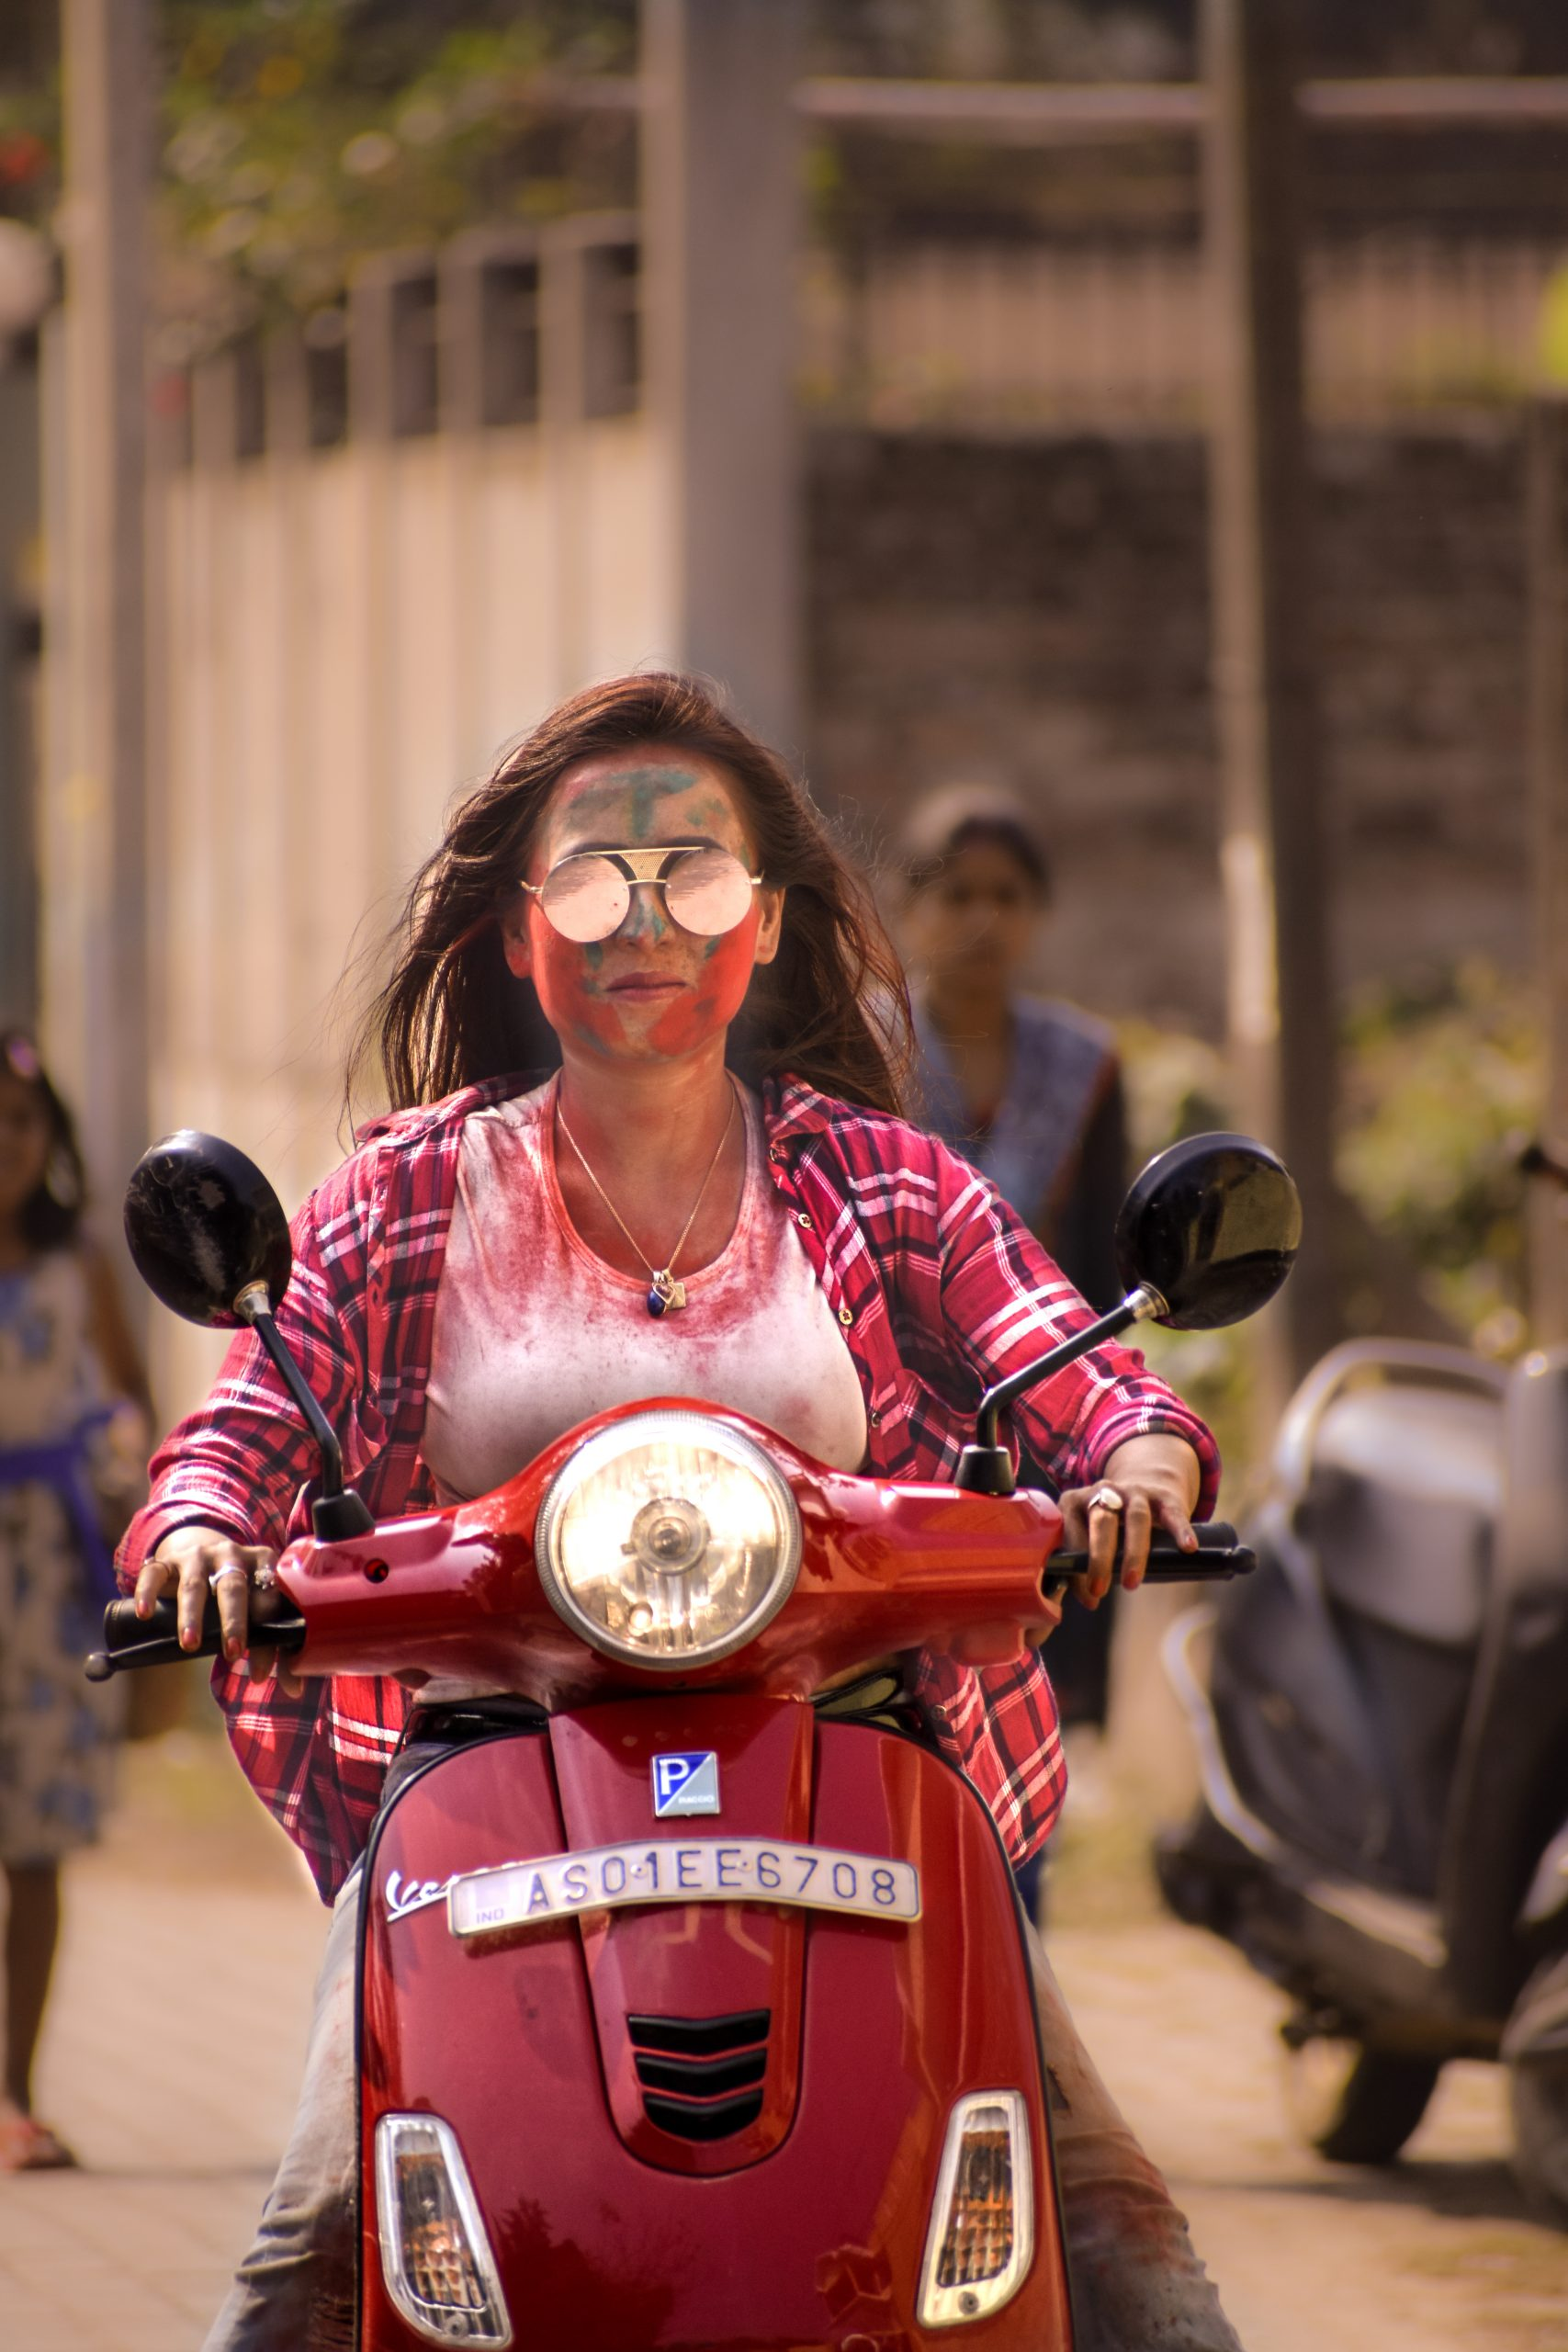 Girl riding scooty during Holi festival